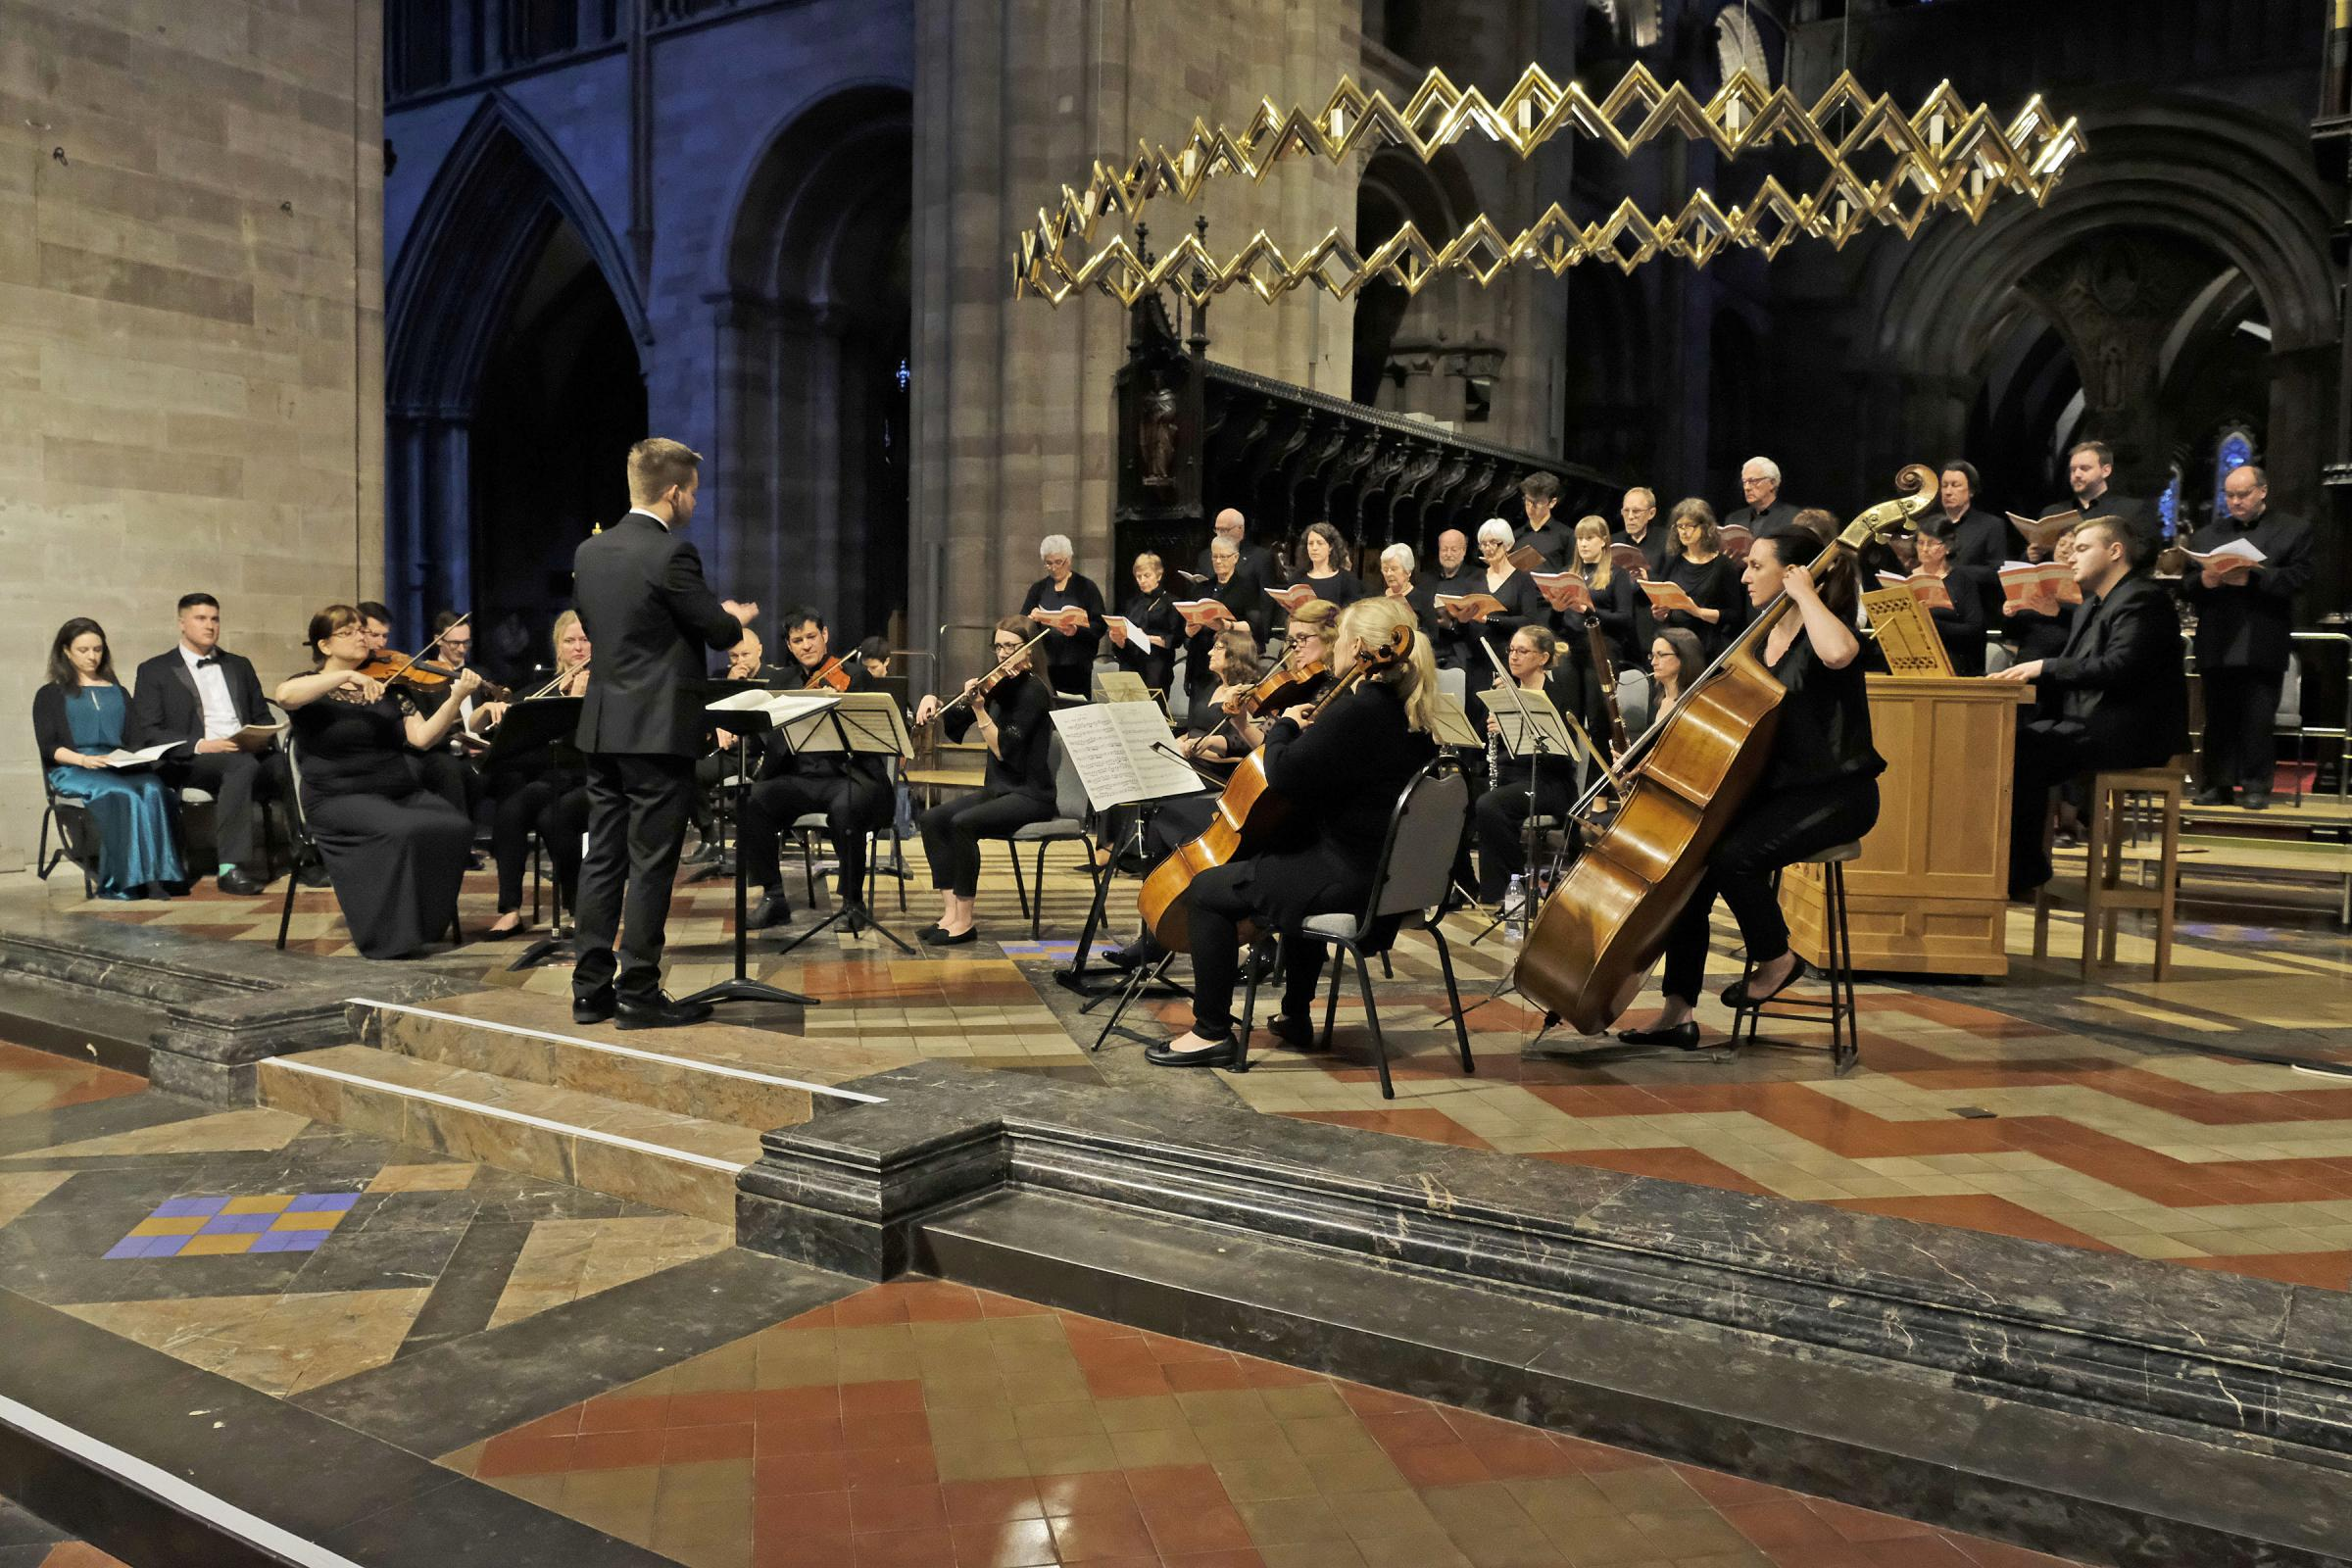 Hereford Chamber Choir performing in Hereford Cathedral